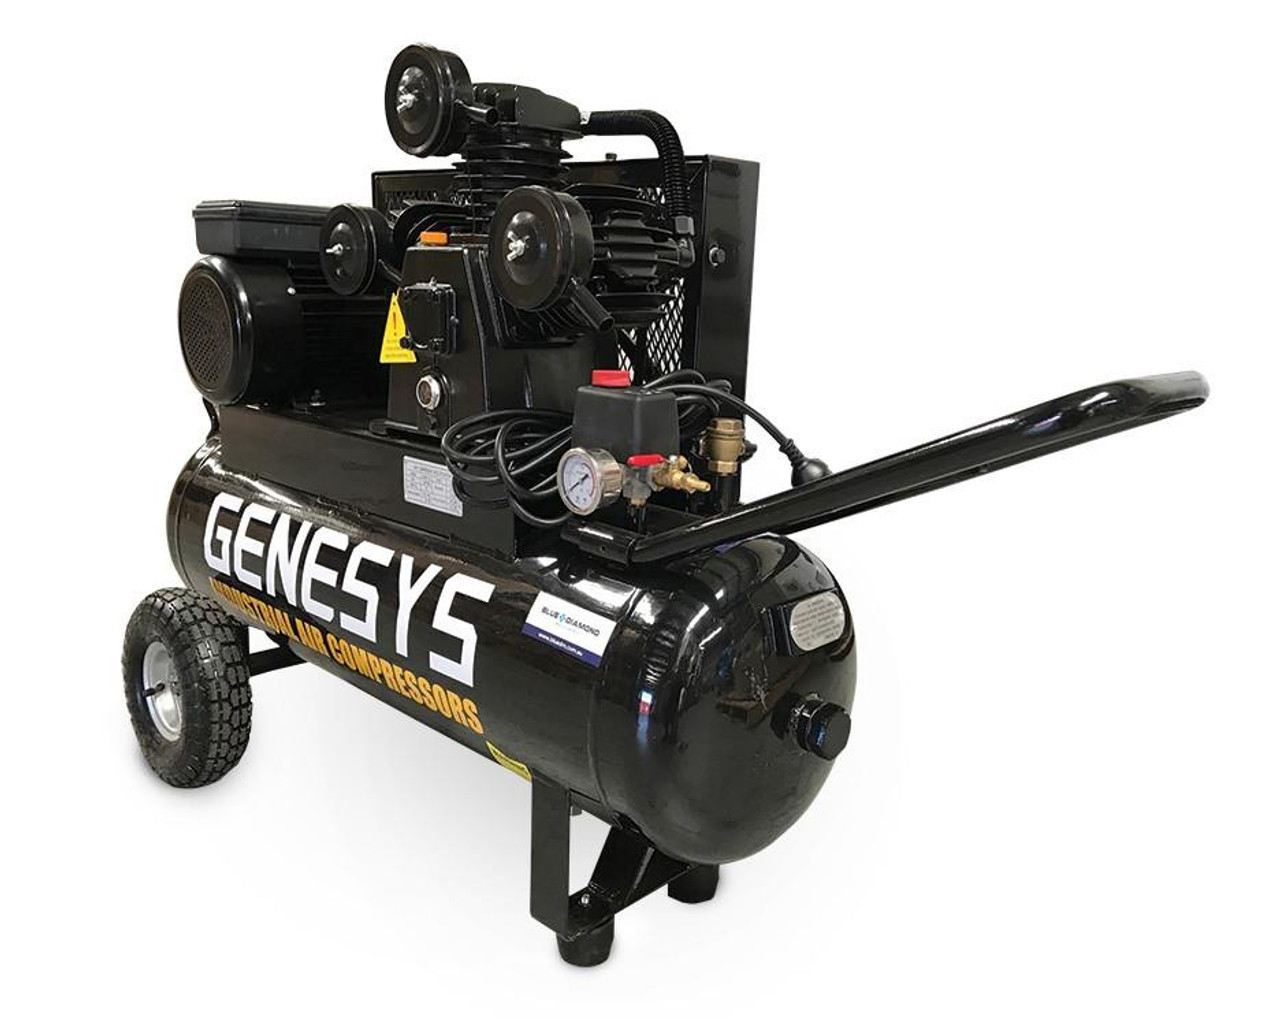 Piston Air Compressors suited for variable air demand in low to medium volumes